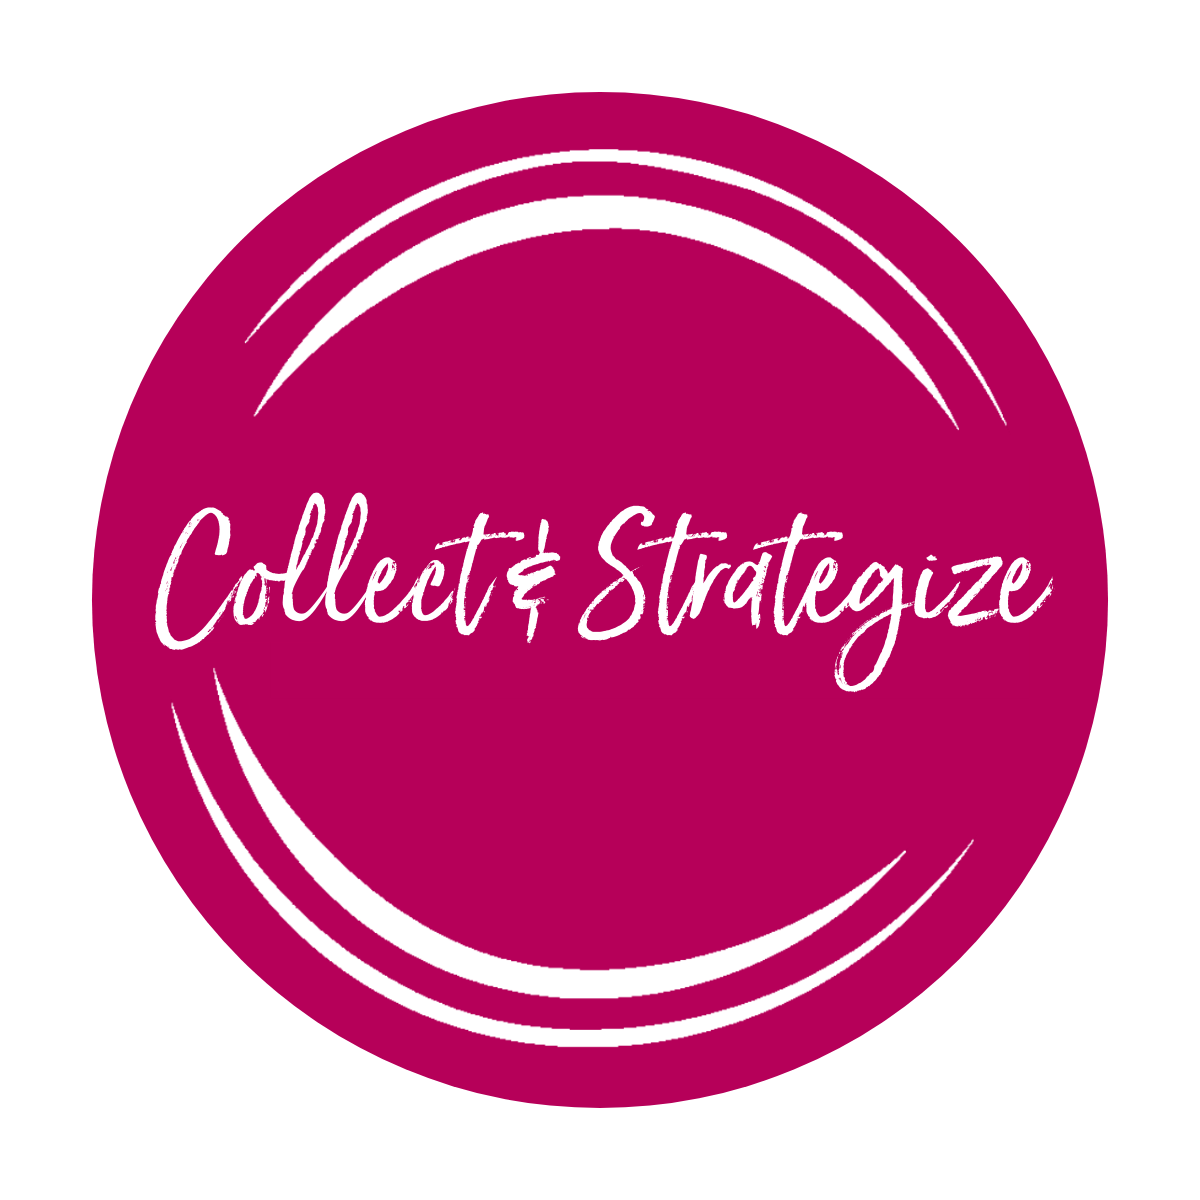 Collect & Strategize